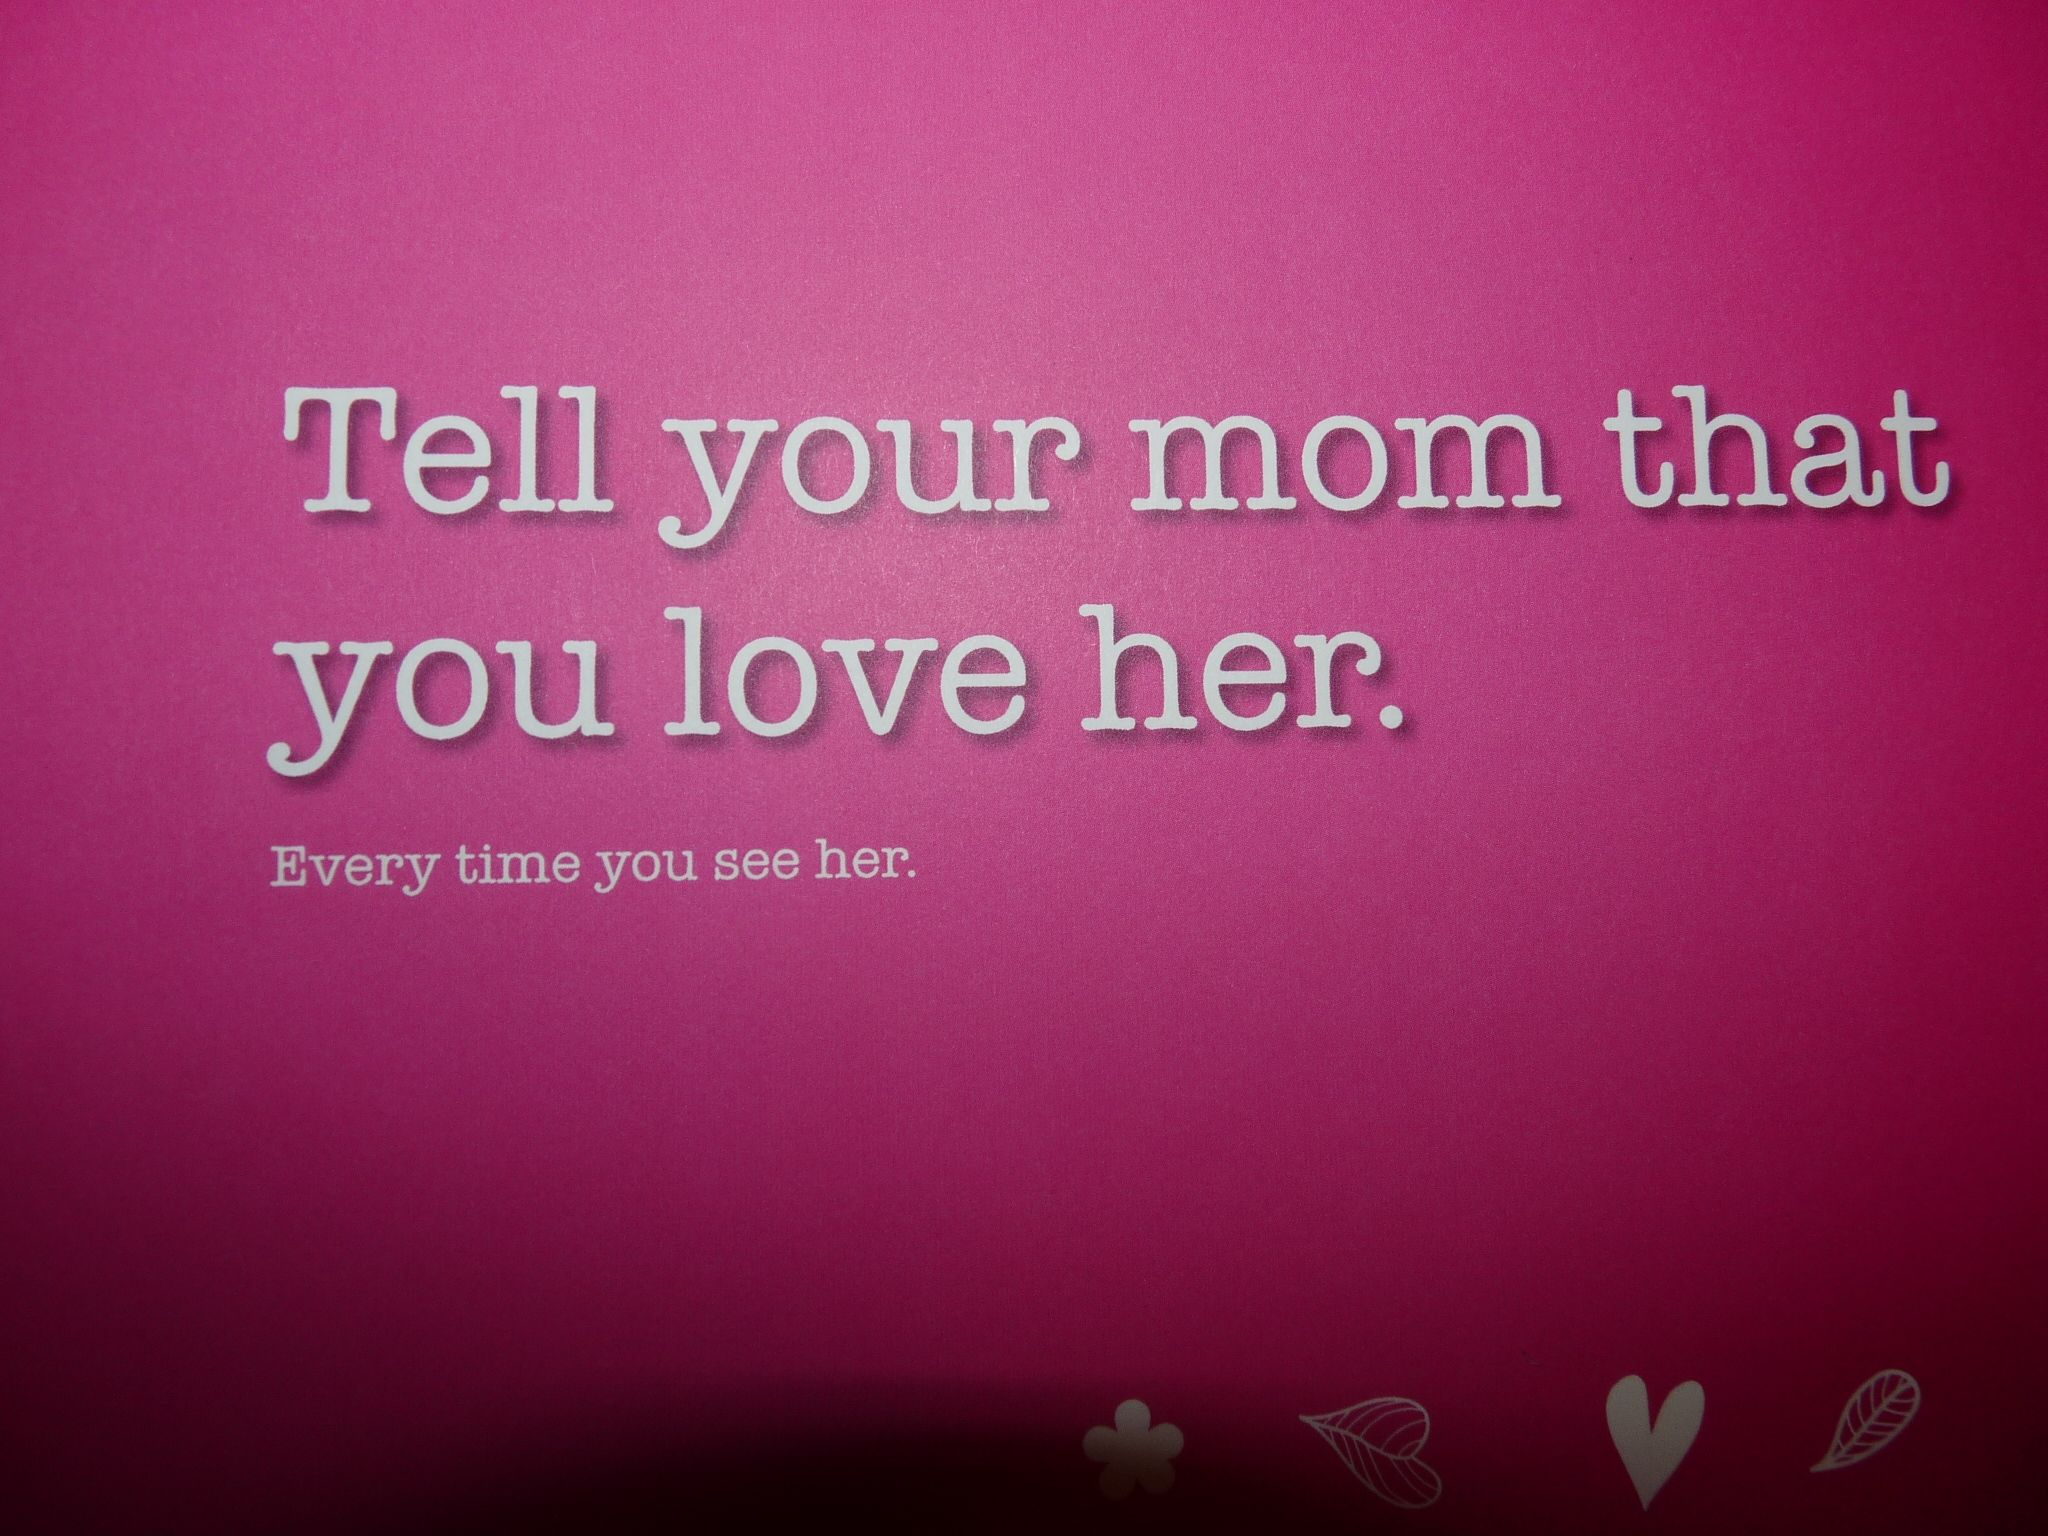 I Love You Mom Quotes Love Your Mom Quotes  Papersalt Books Product Review And Giveaway